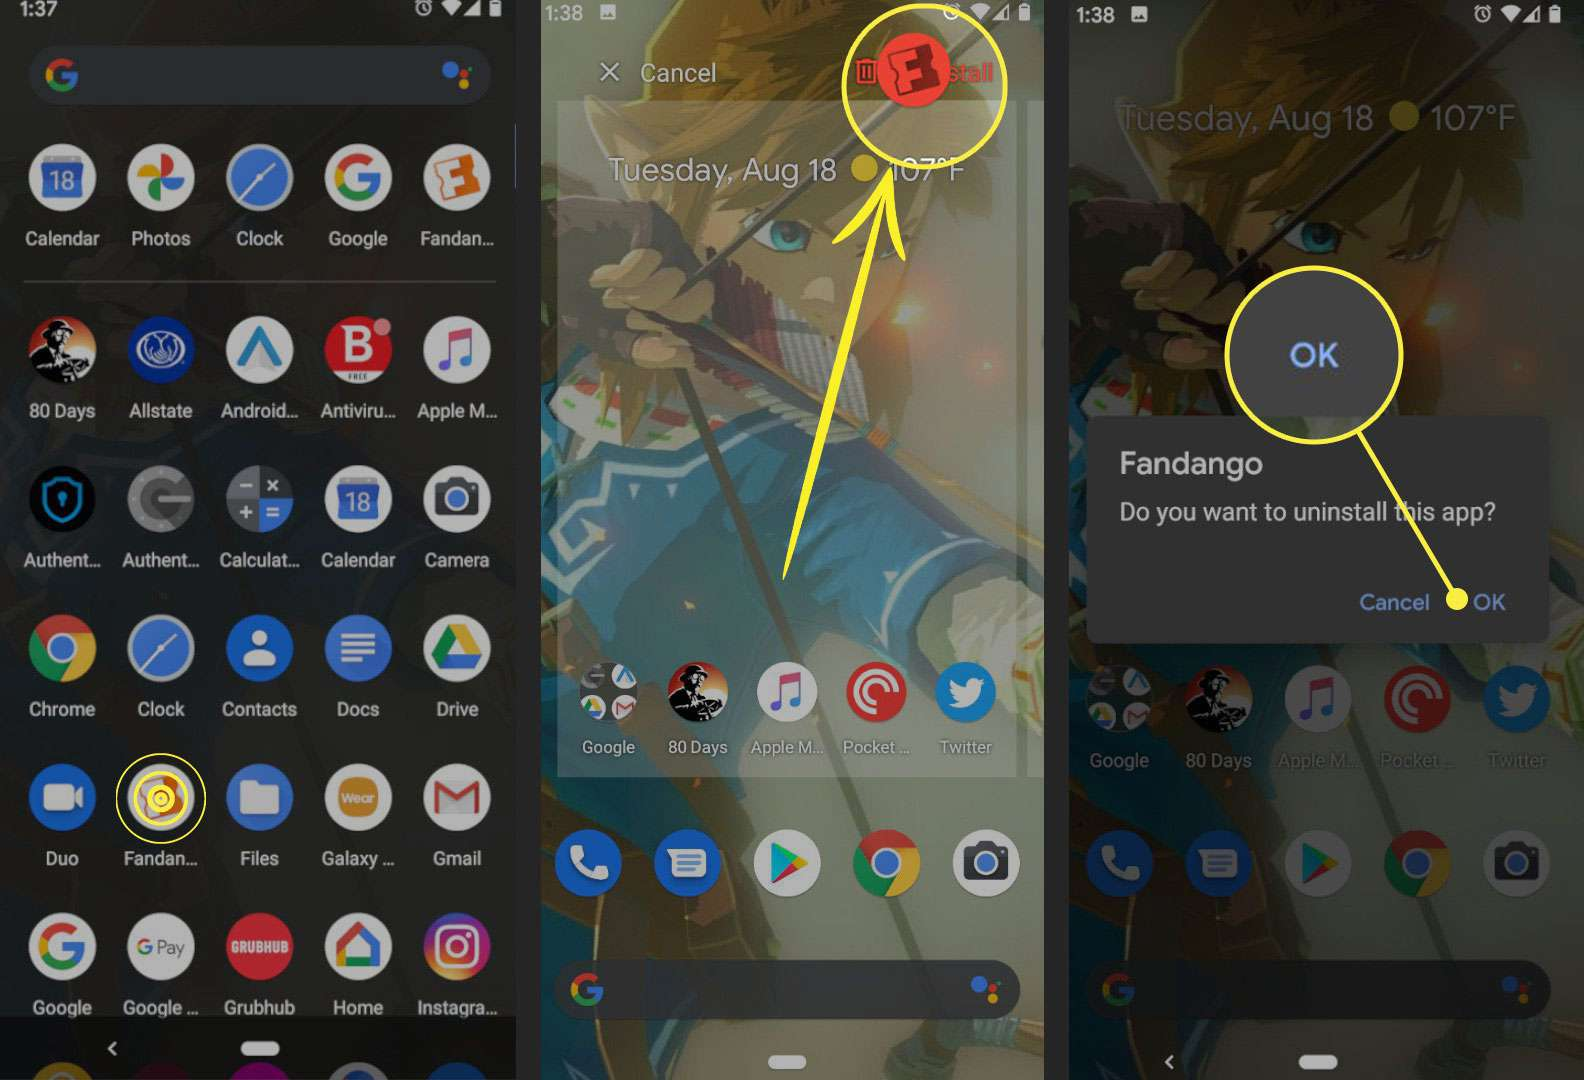 How to Fix The Apps Not Working on Android. 4